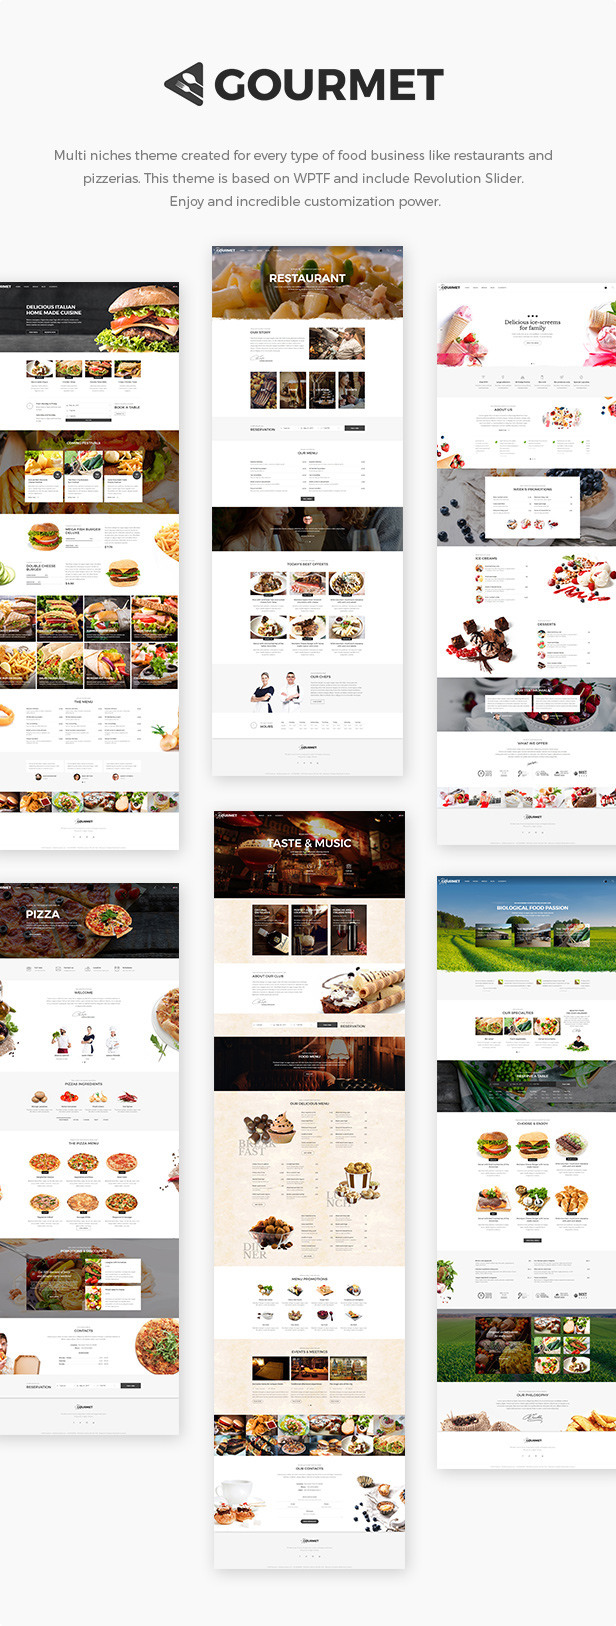 Gourmet - Restaurant And Gastronomy Theme | Restaurant & Food - 1